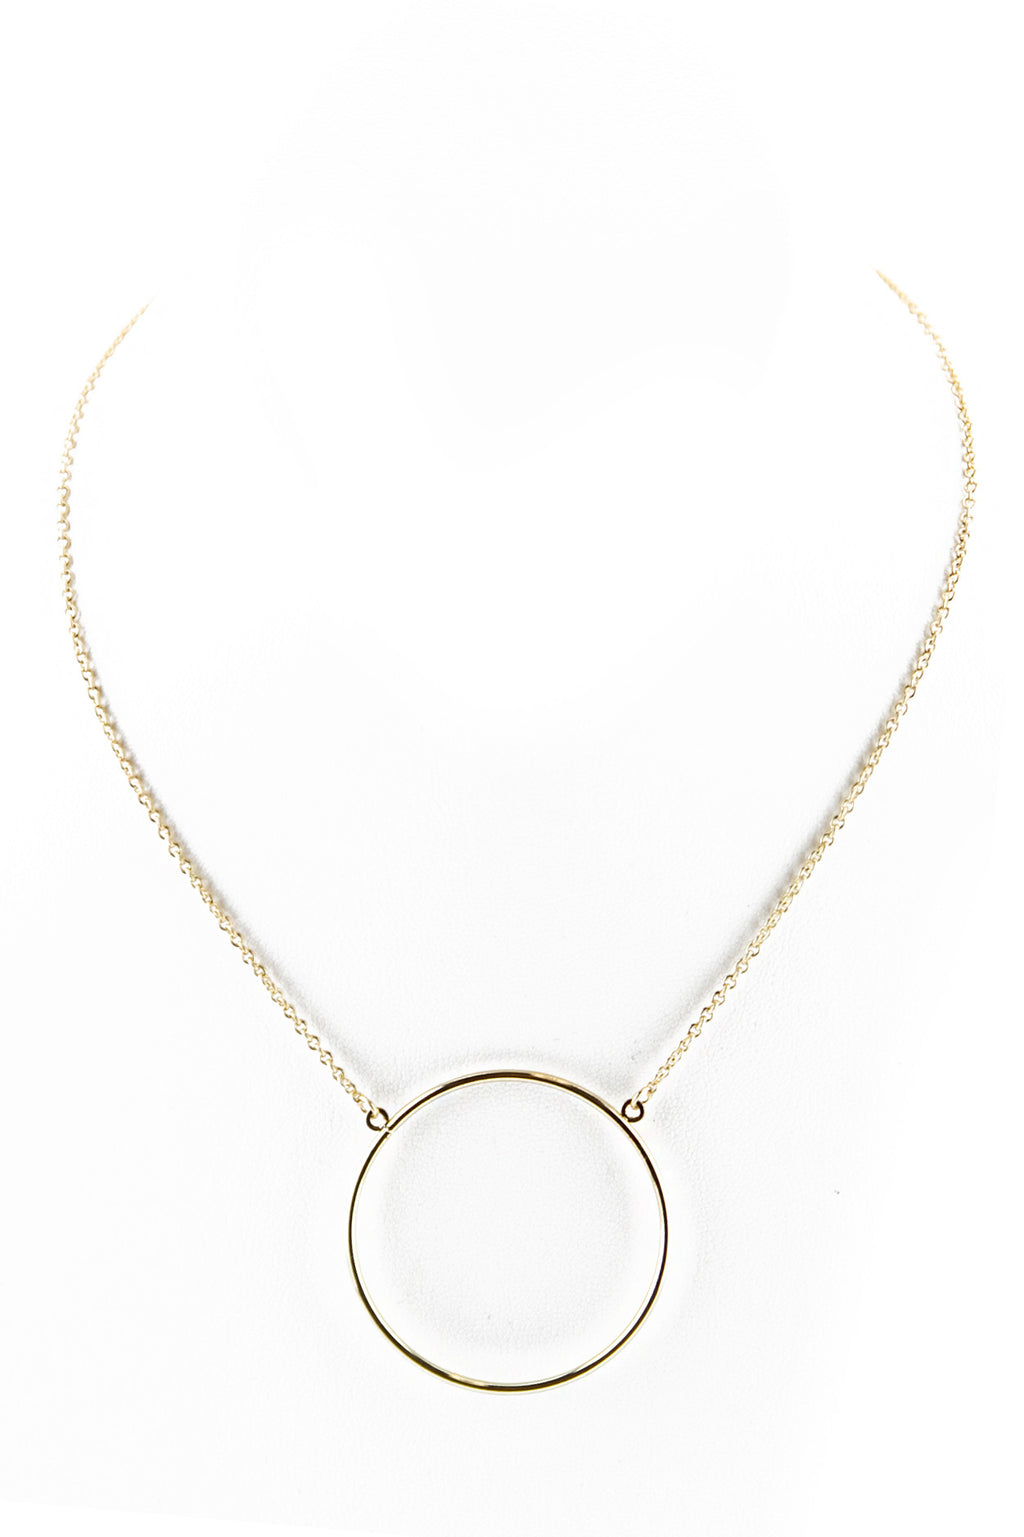 PETITE CIRCLE PENDANT NECKLACE - Haute & Rebellious